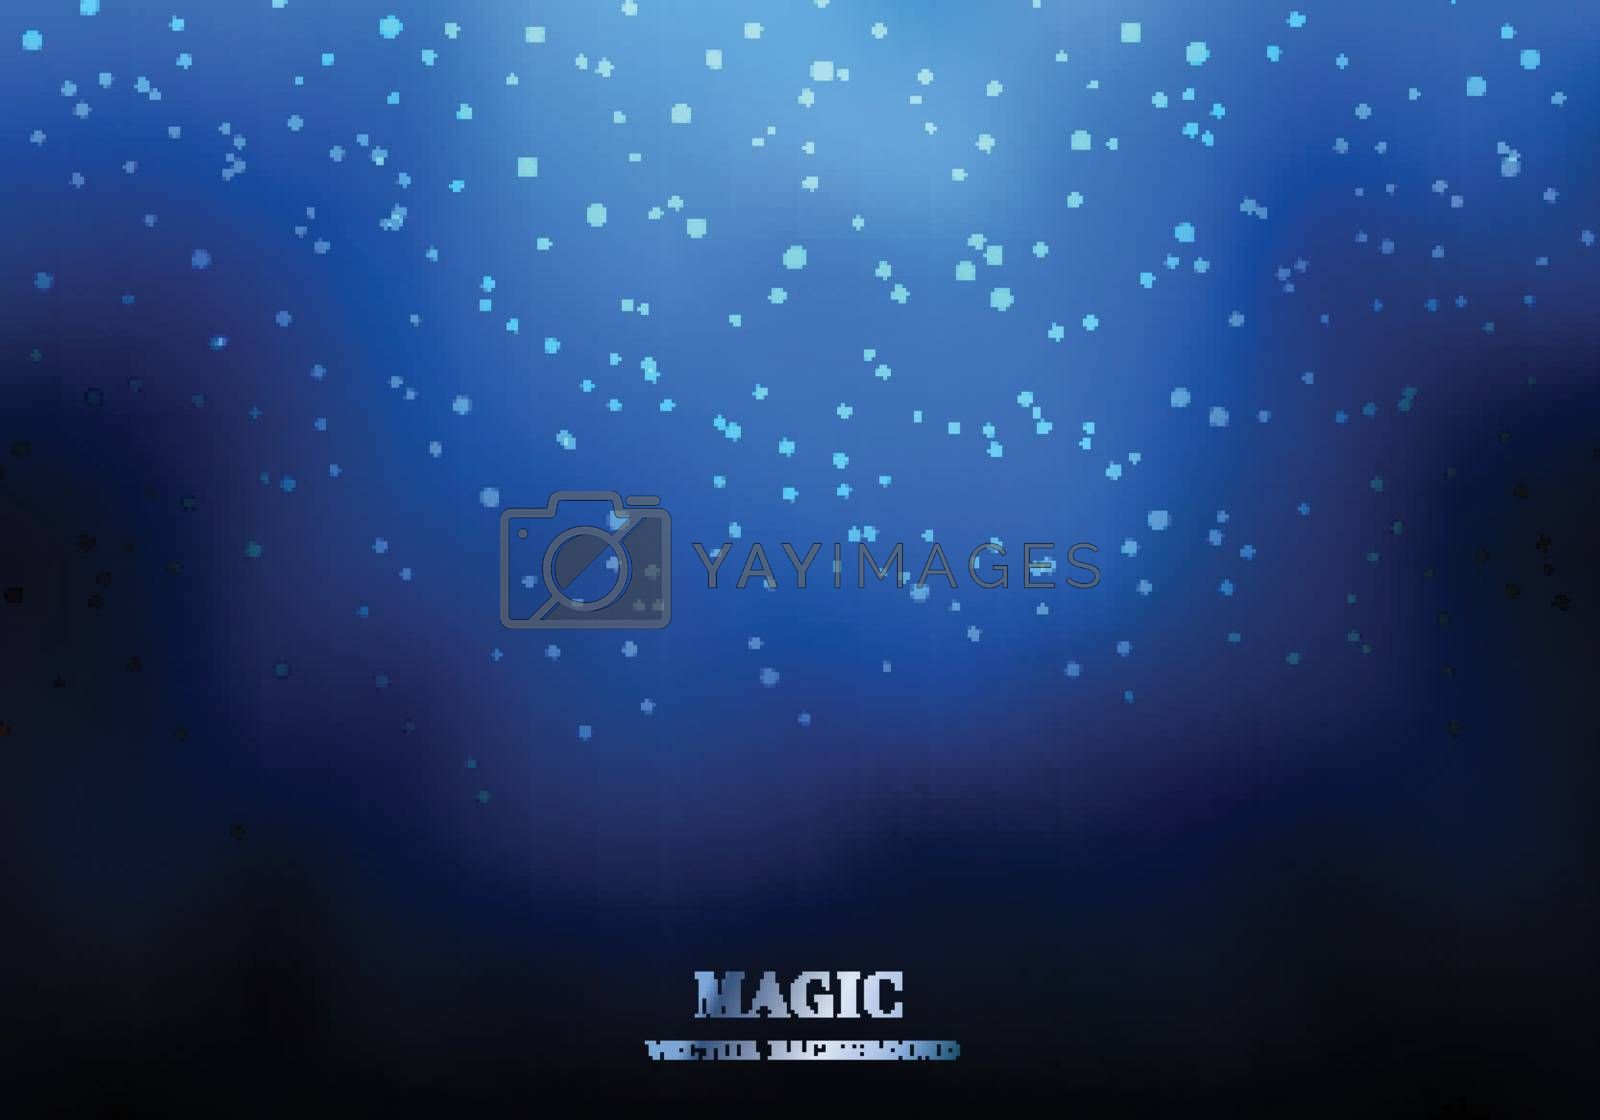 Magic night blue sky background with sparkling glitter. Wedding card template. Vector illustration